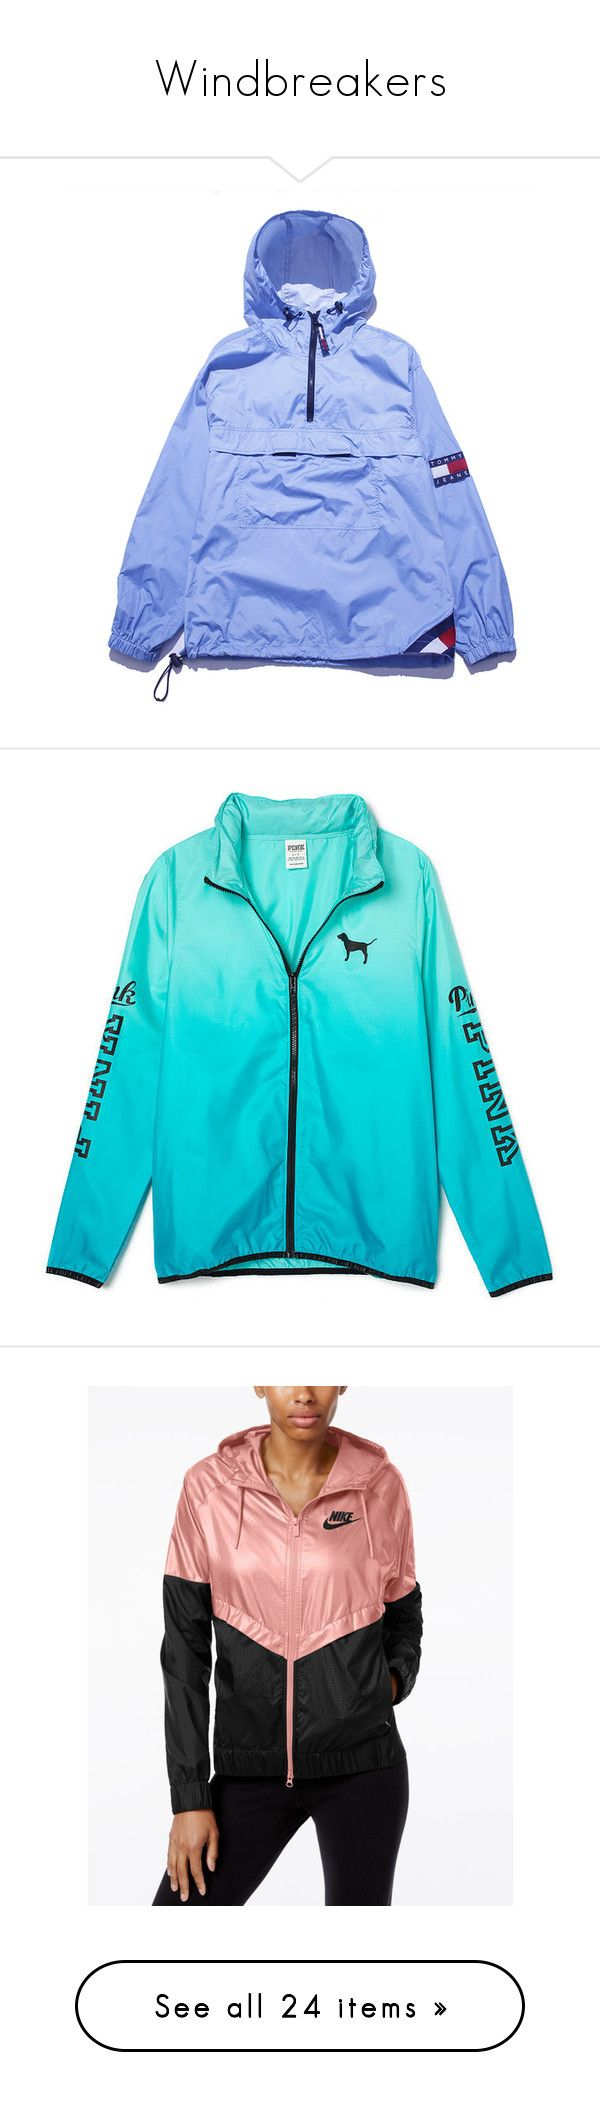 """""""Windbreakers"""" by seanarice ❤ liked on Polyvore featuring outerwear, jackets, tops, blue parka, blue parka jacket, parka jackets, wind breaker jacket, tommy hilfiger, pink and victoria's secret"""